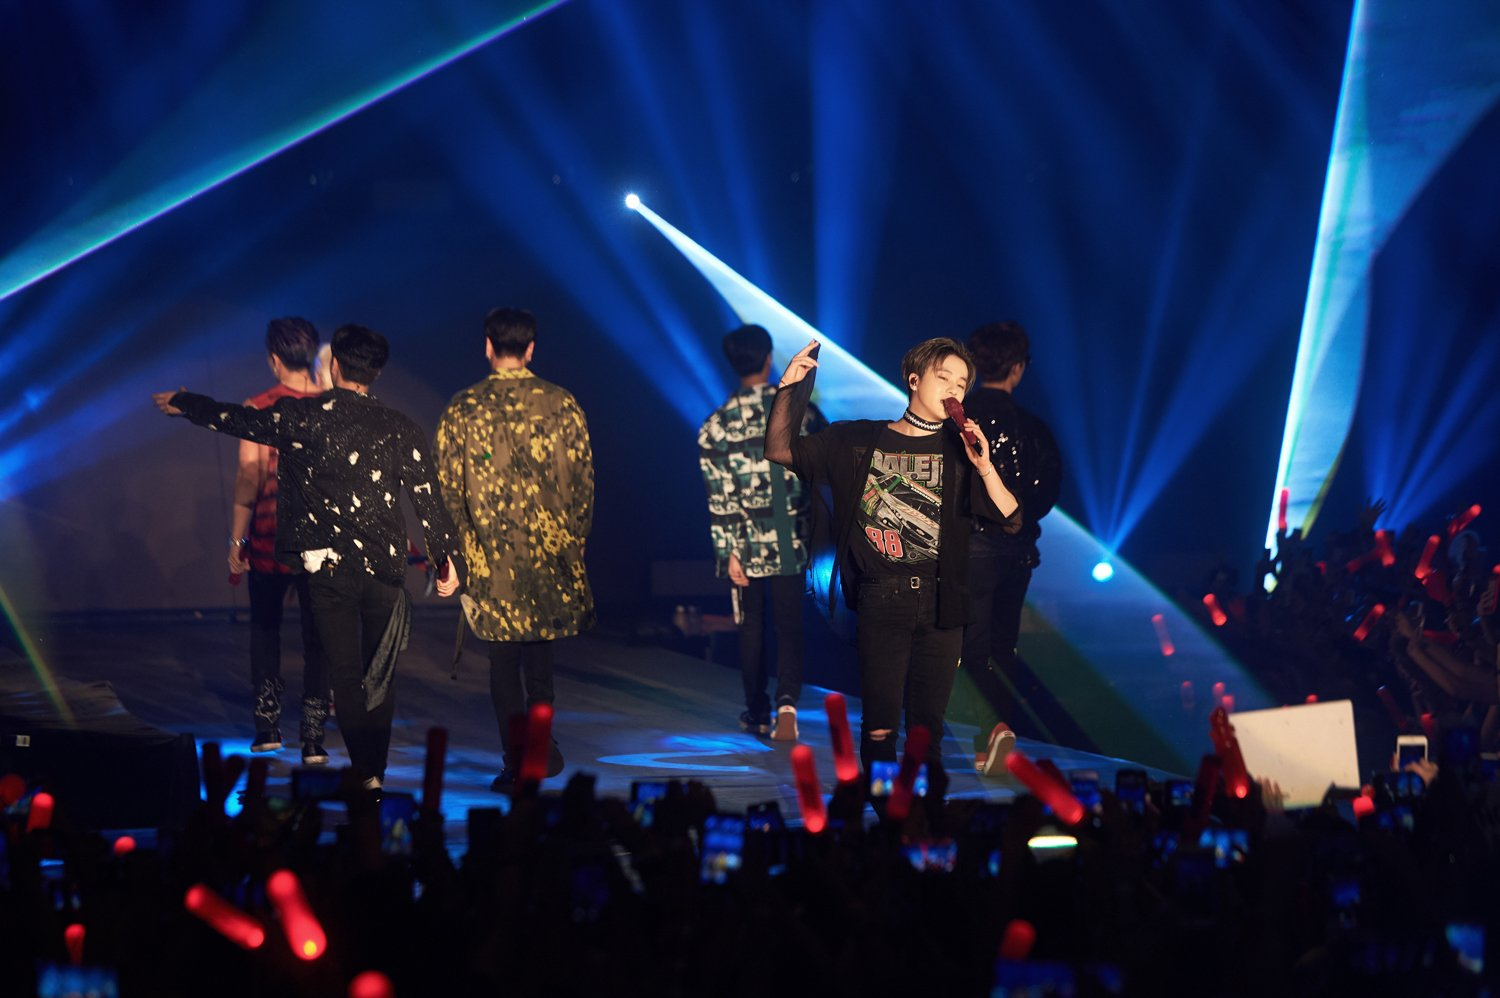 COVER] iKON Says They Will Protect iKONICs From Now Onwards At Their